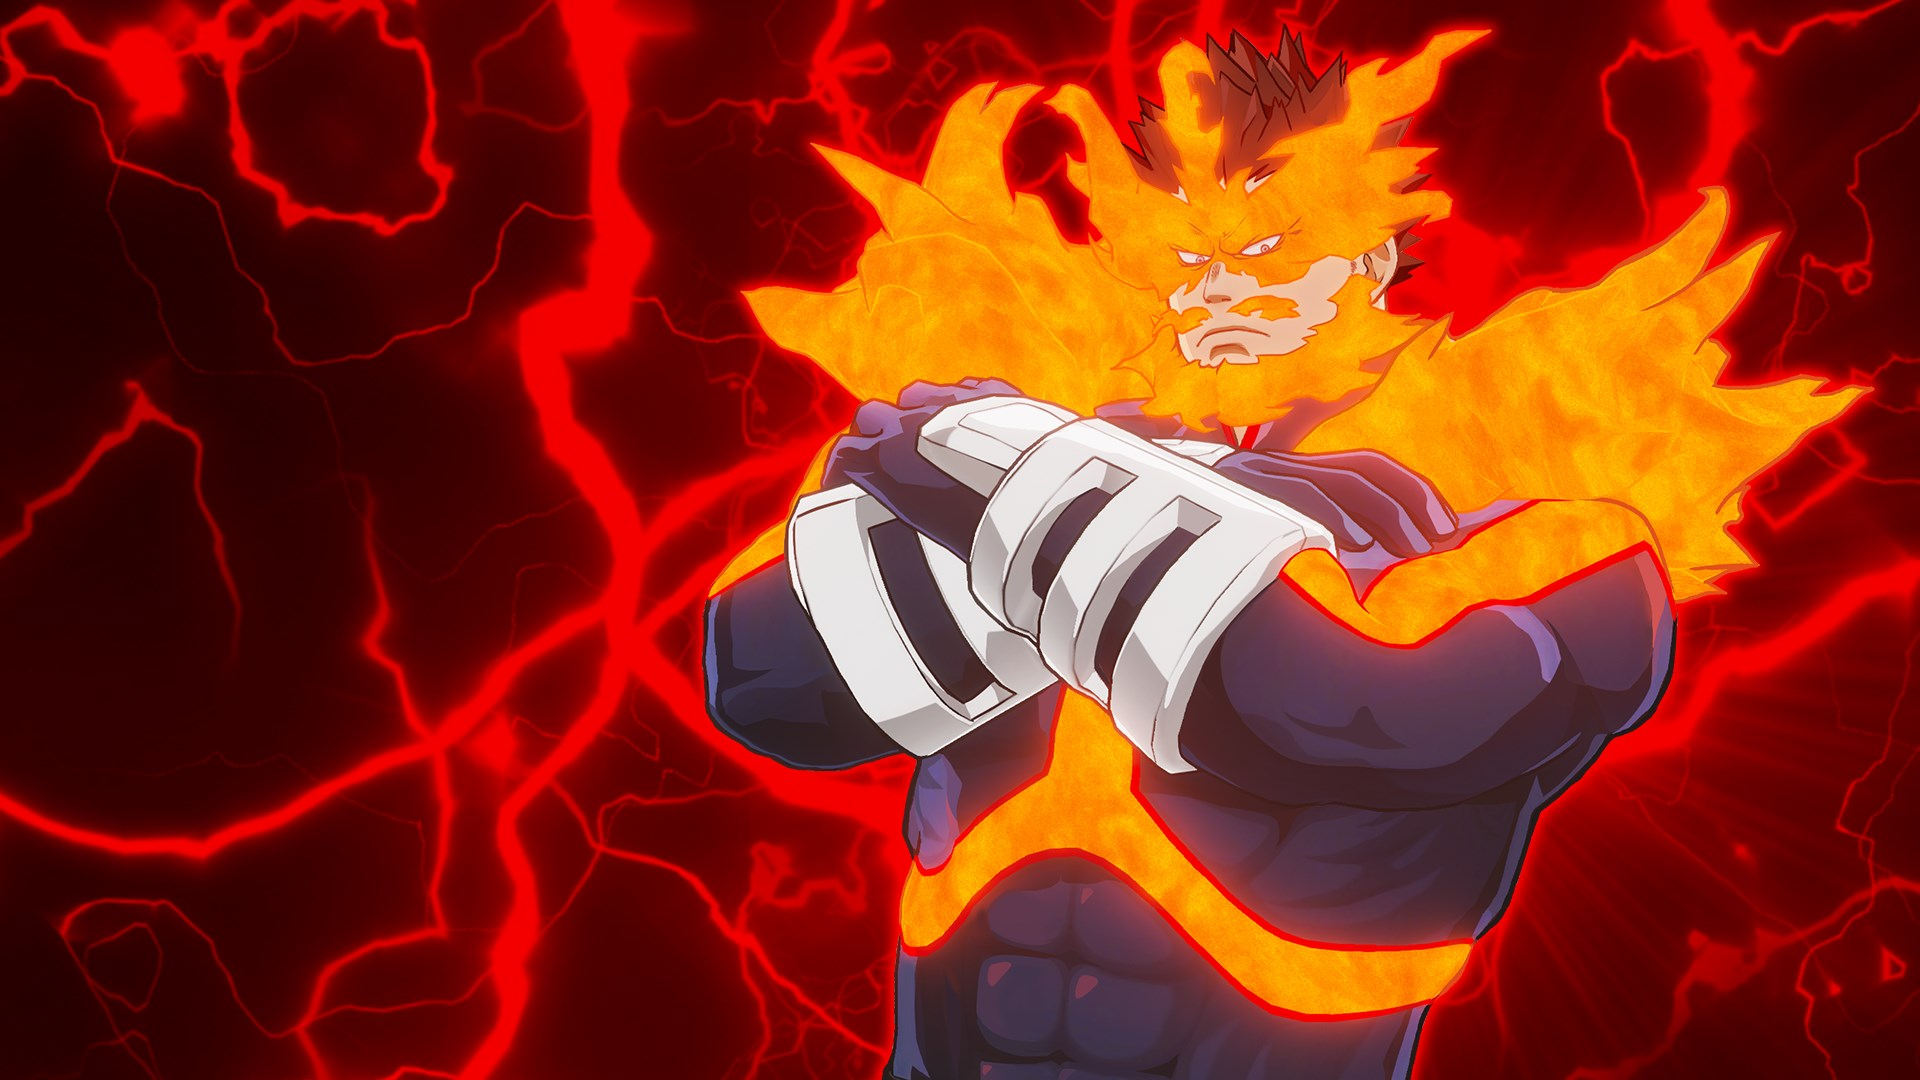 MY HERO ONE'S JUSTICE Playable Character: Pro Hero Endeavor